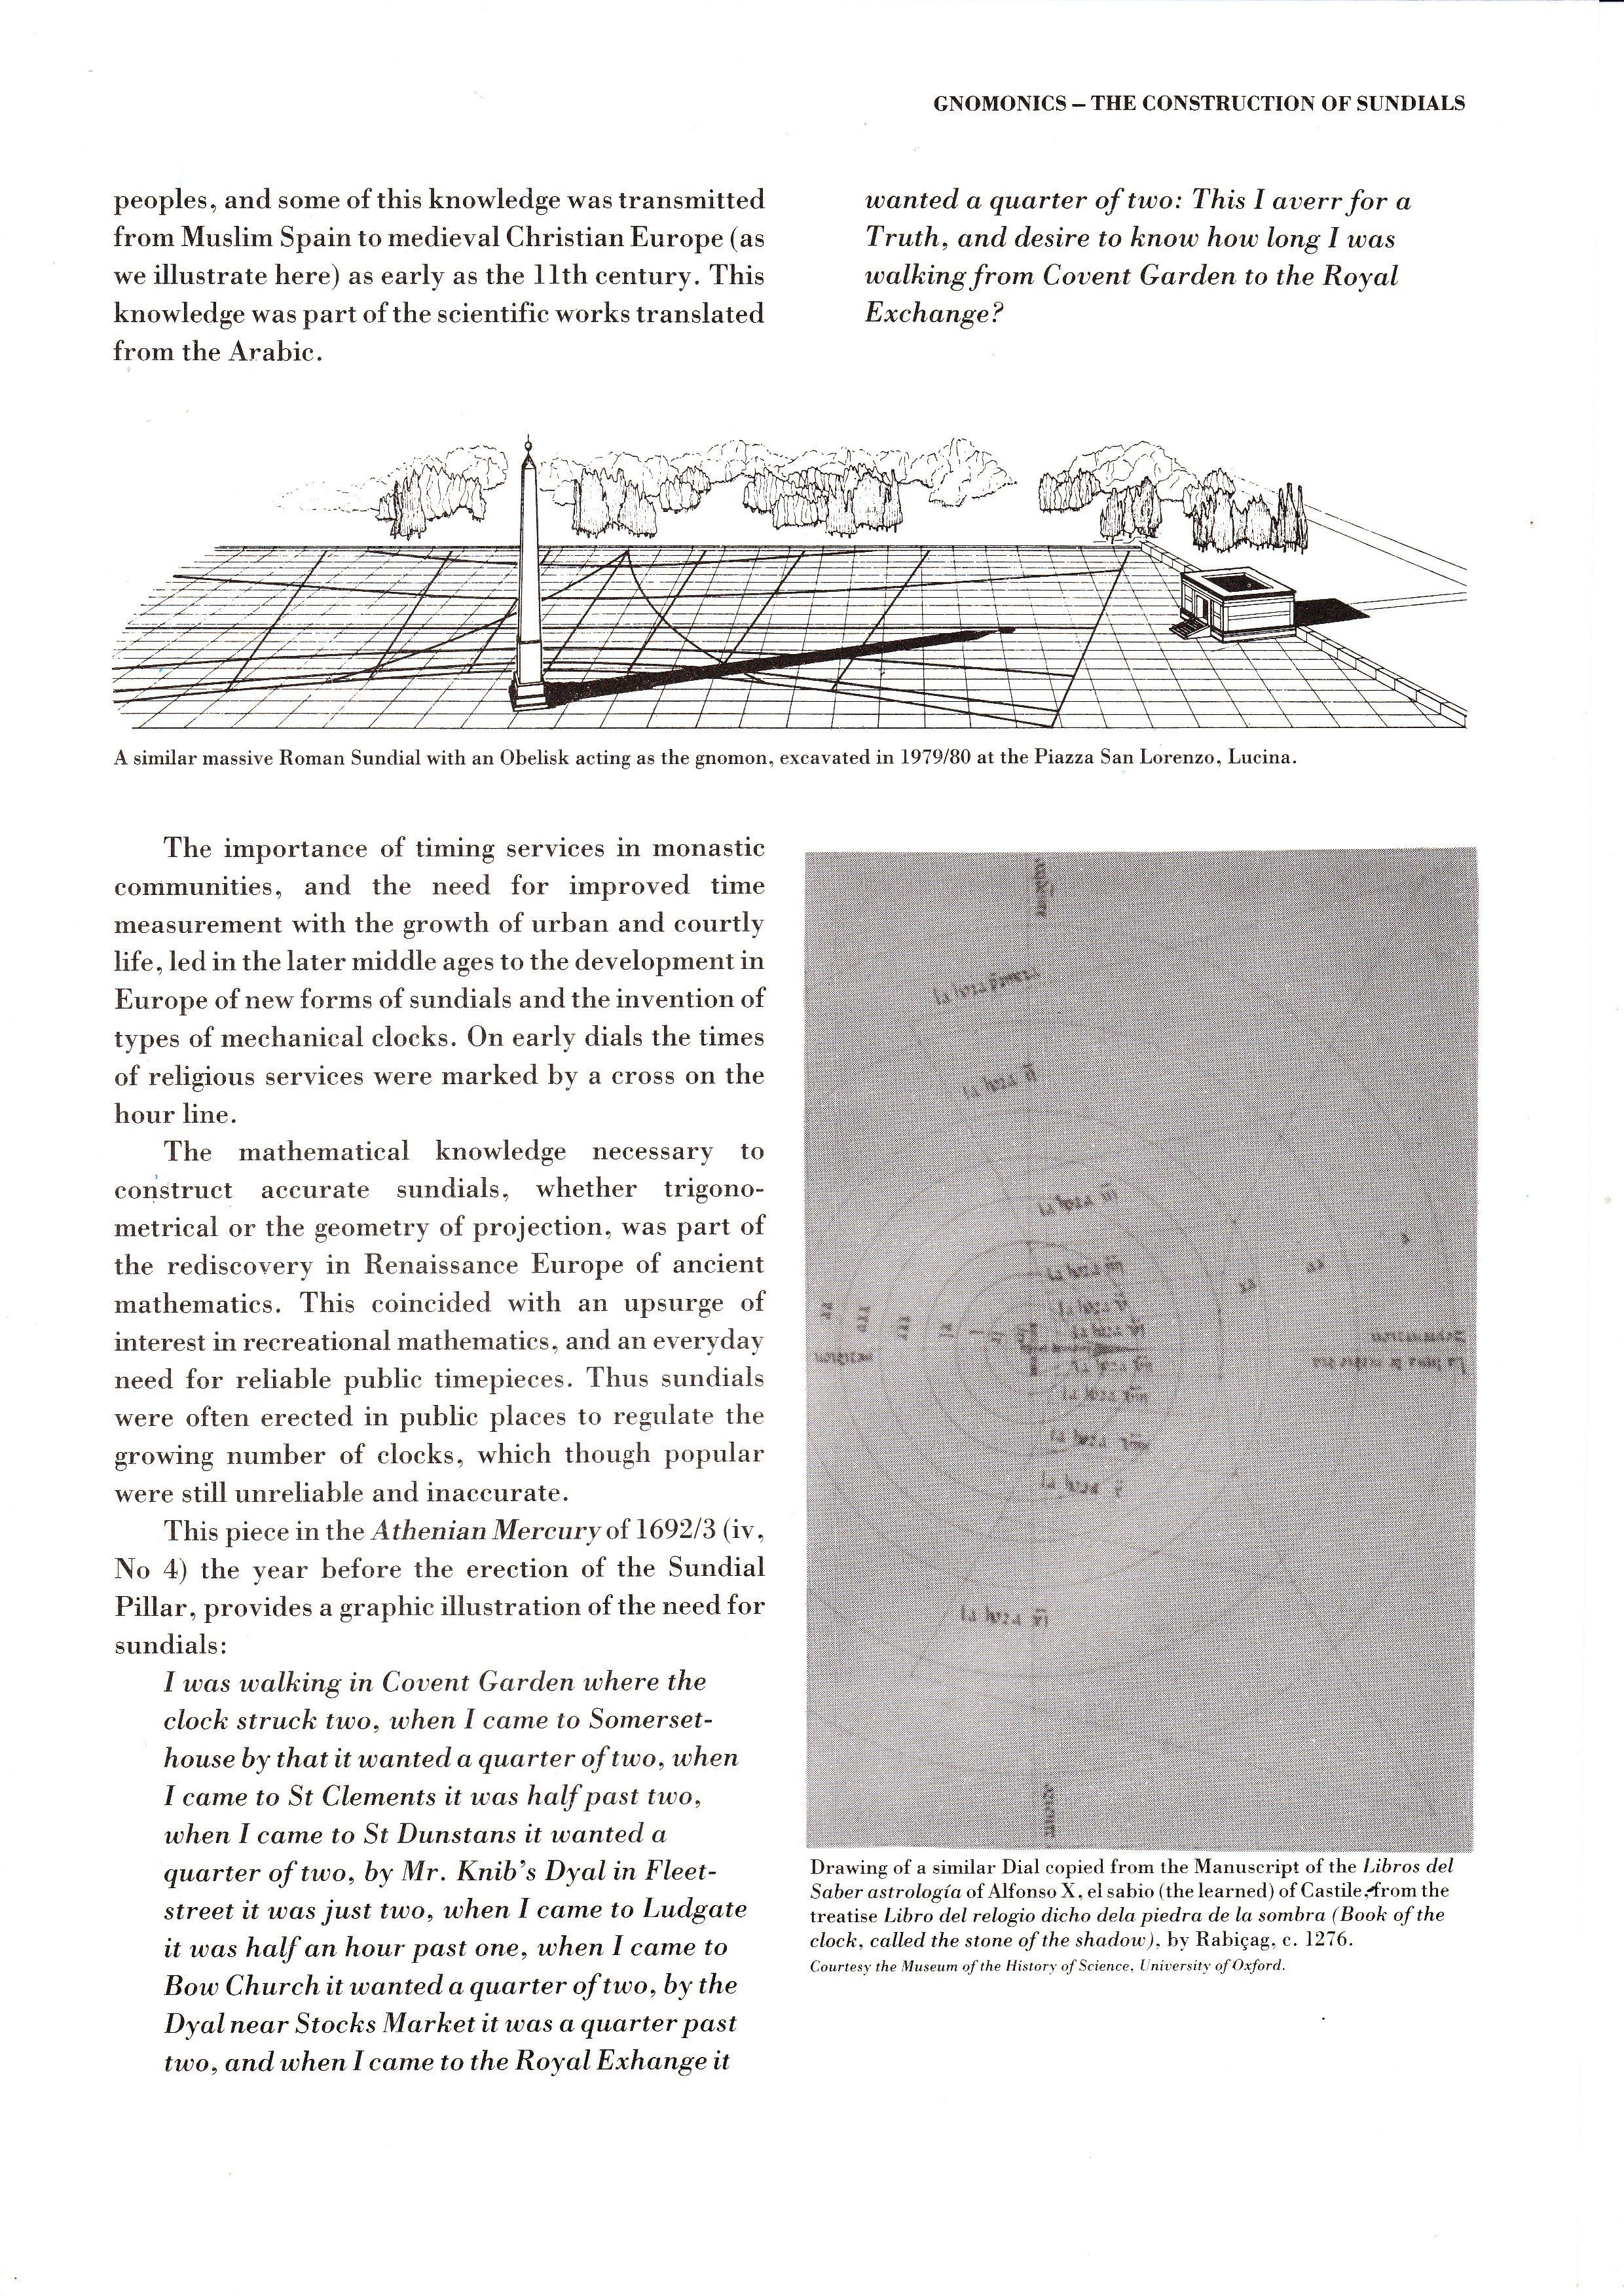 �Gnomonics � The Construction of Sundials� from �Seven Dials�